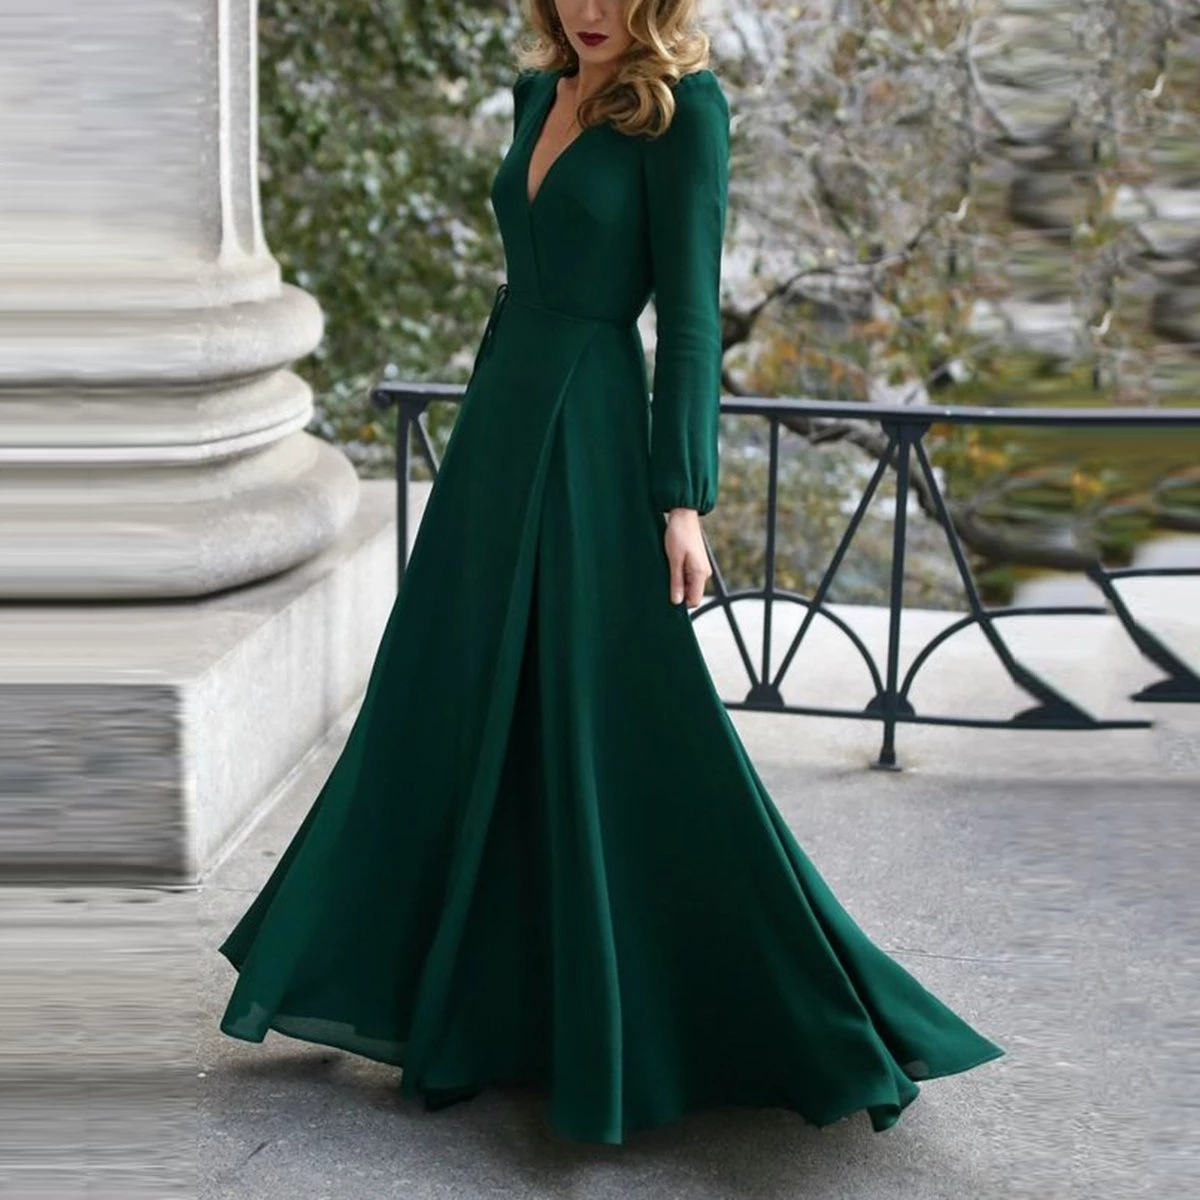 Sexy Elegant Women Deep V Neck Belted Long Maxi Dress Solid Color Split Hem Puff Long Sleeve Formal Party Wear Dress